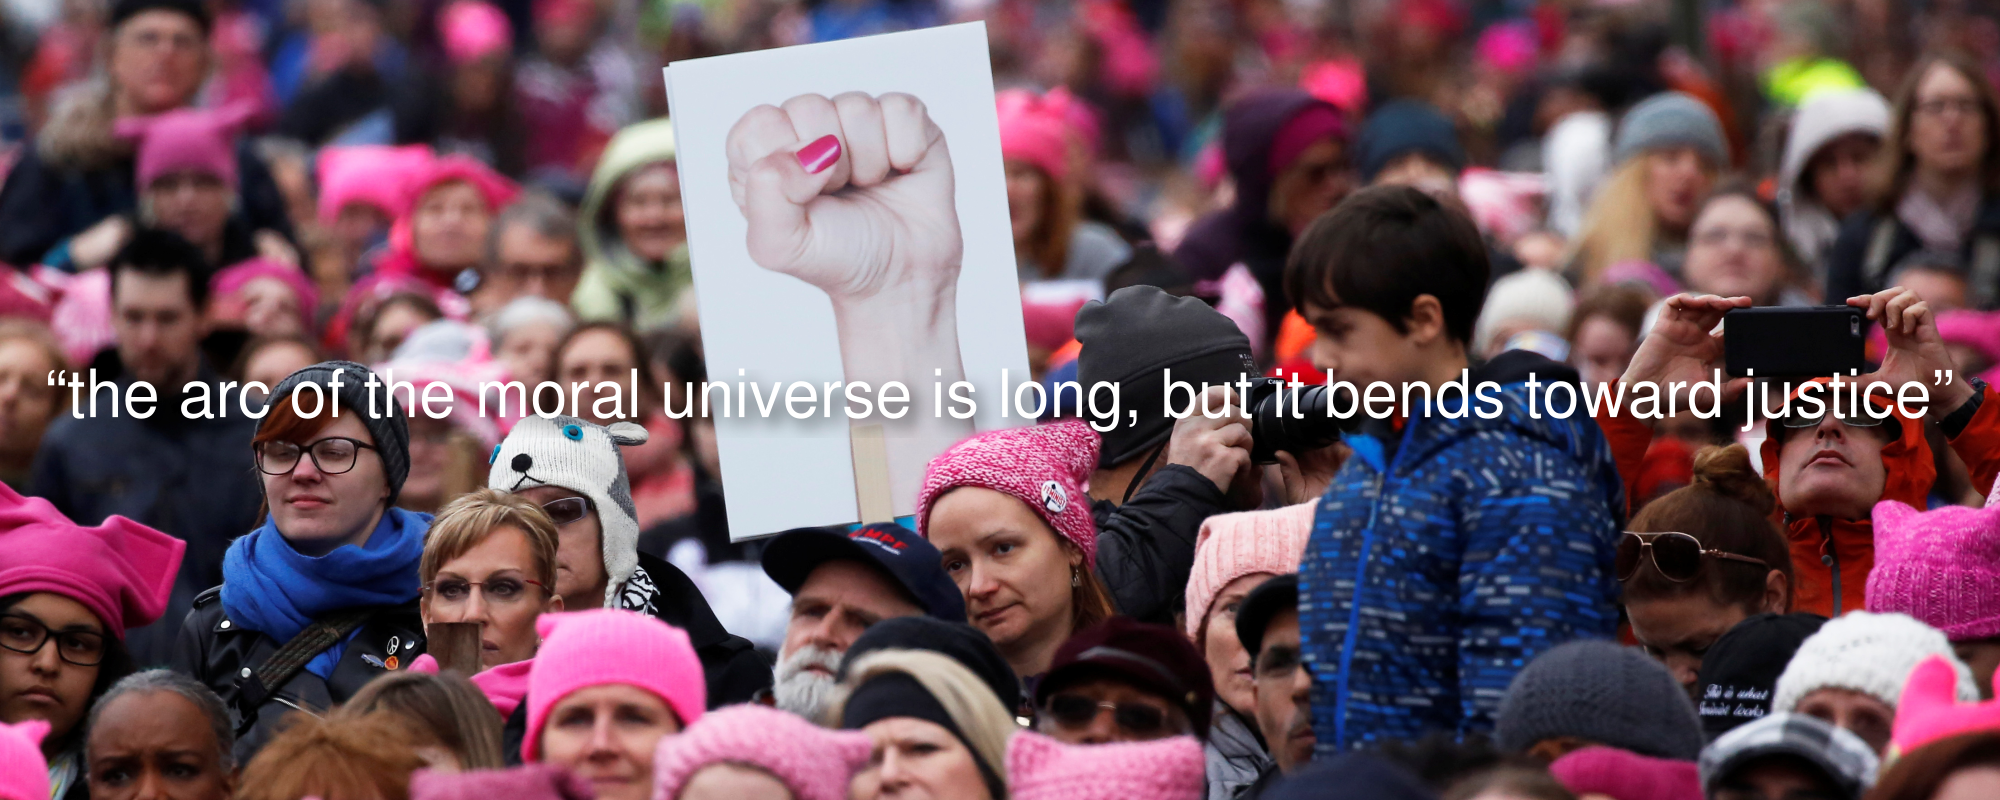 Hundreds of thousands of protesters converge on Washington, D.C. for the Women's March (Image credit: PBS )